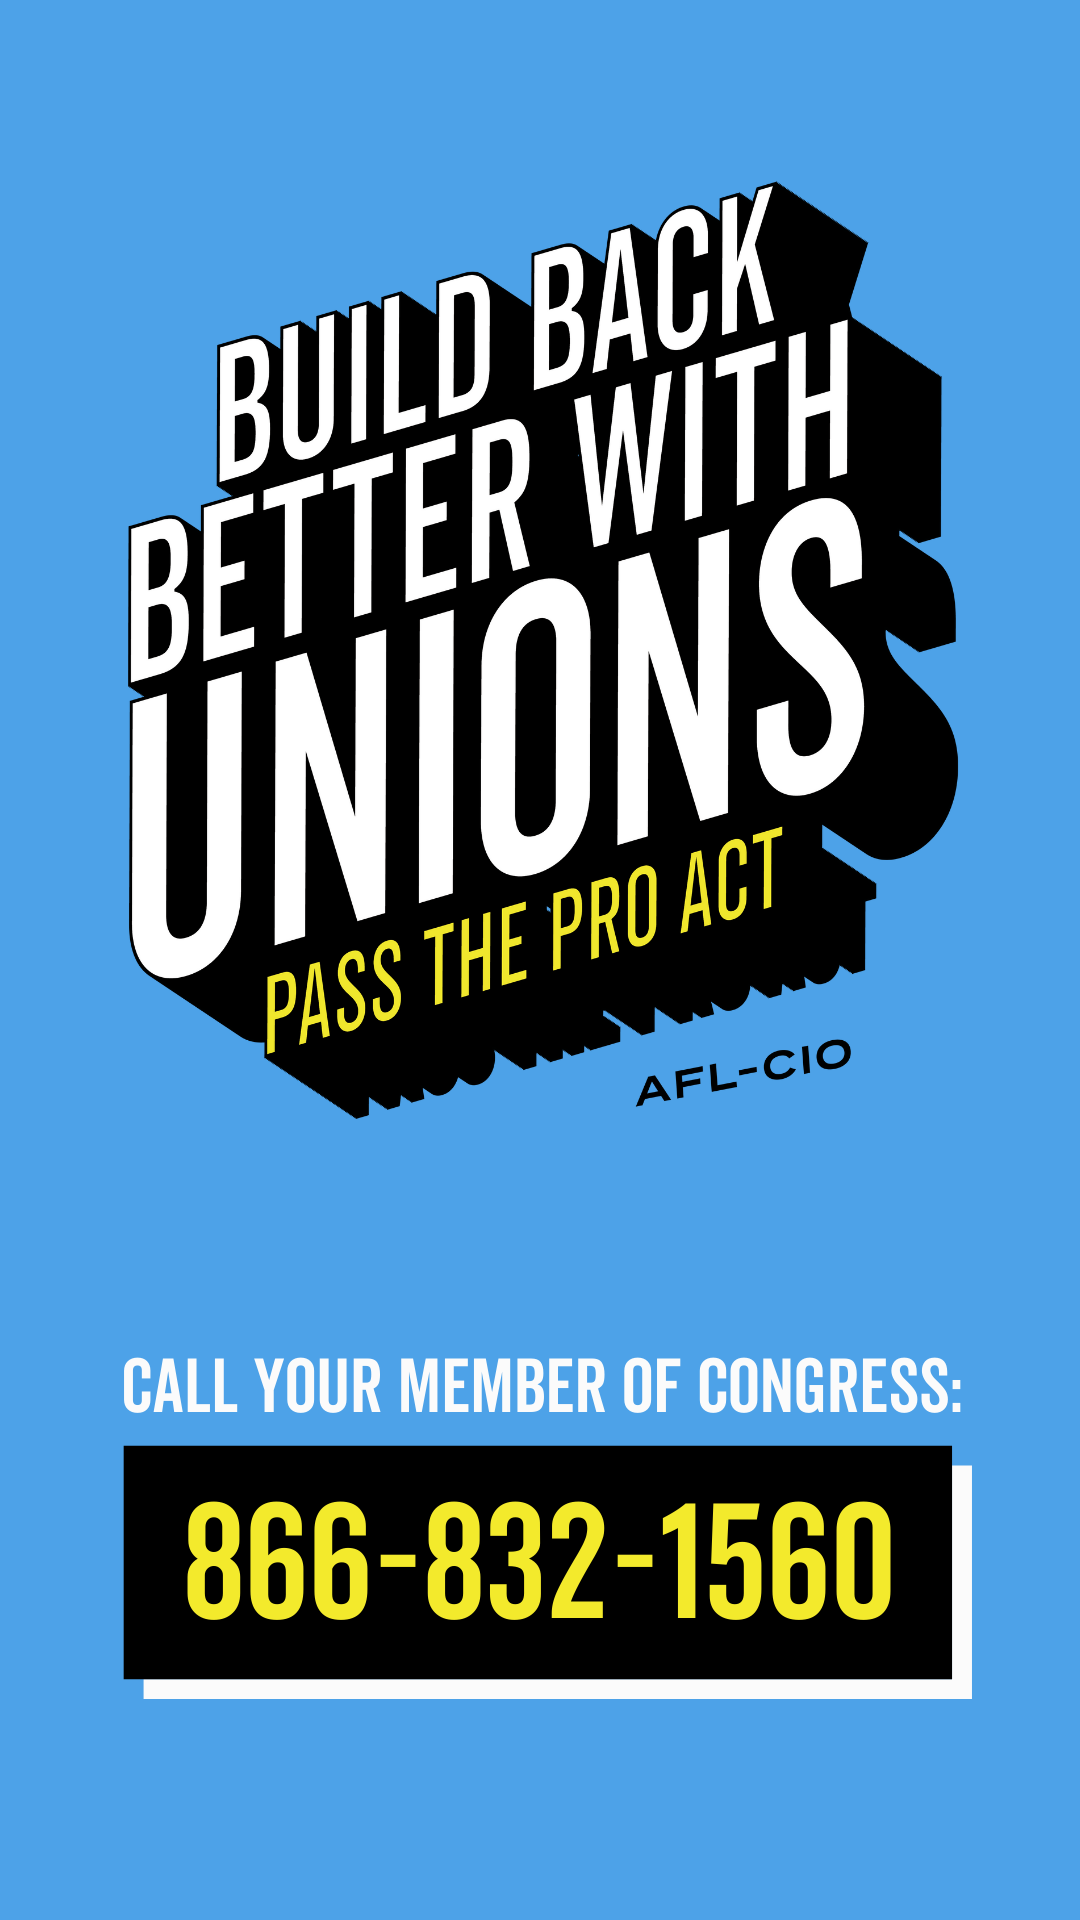 Build Back Better with Unions. Pass the Pro Act. Call Your Member of Congress 866-832-1560